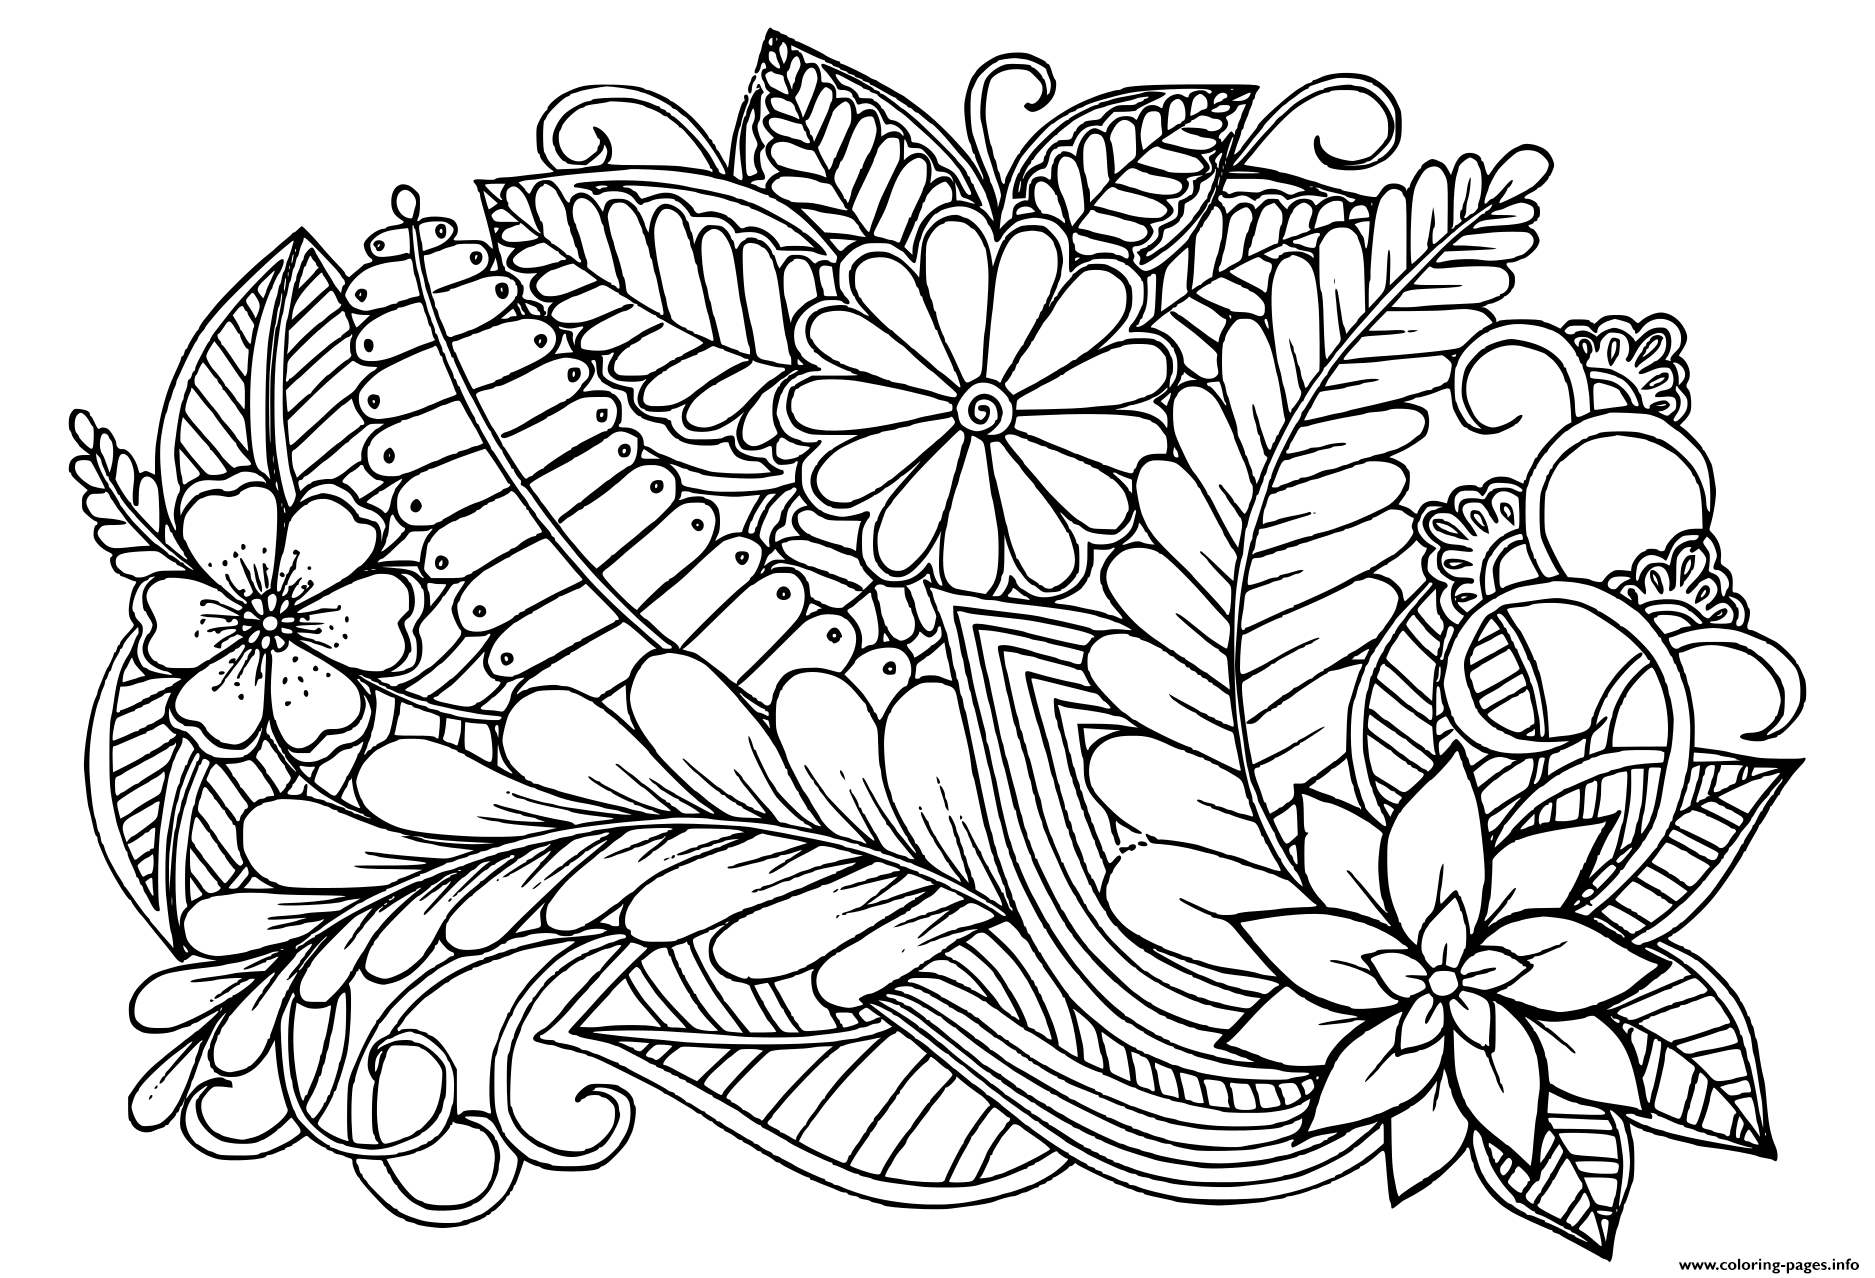 black and white color pages doodle floral pattern in black and white adult coloring white pages black and color